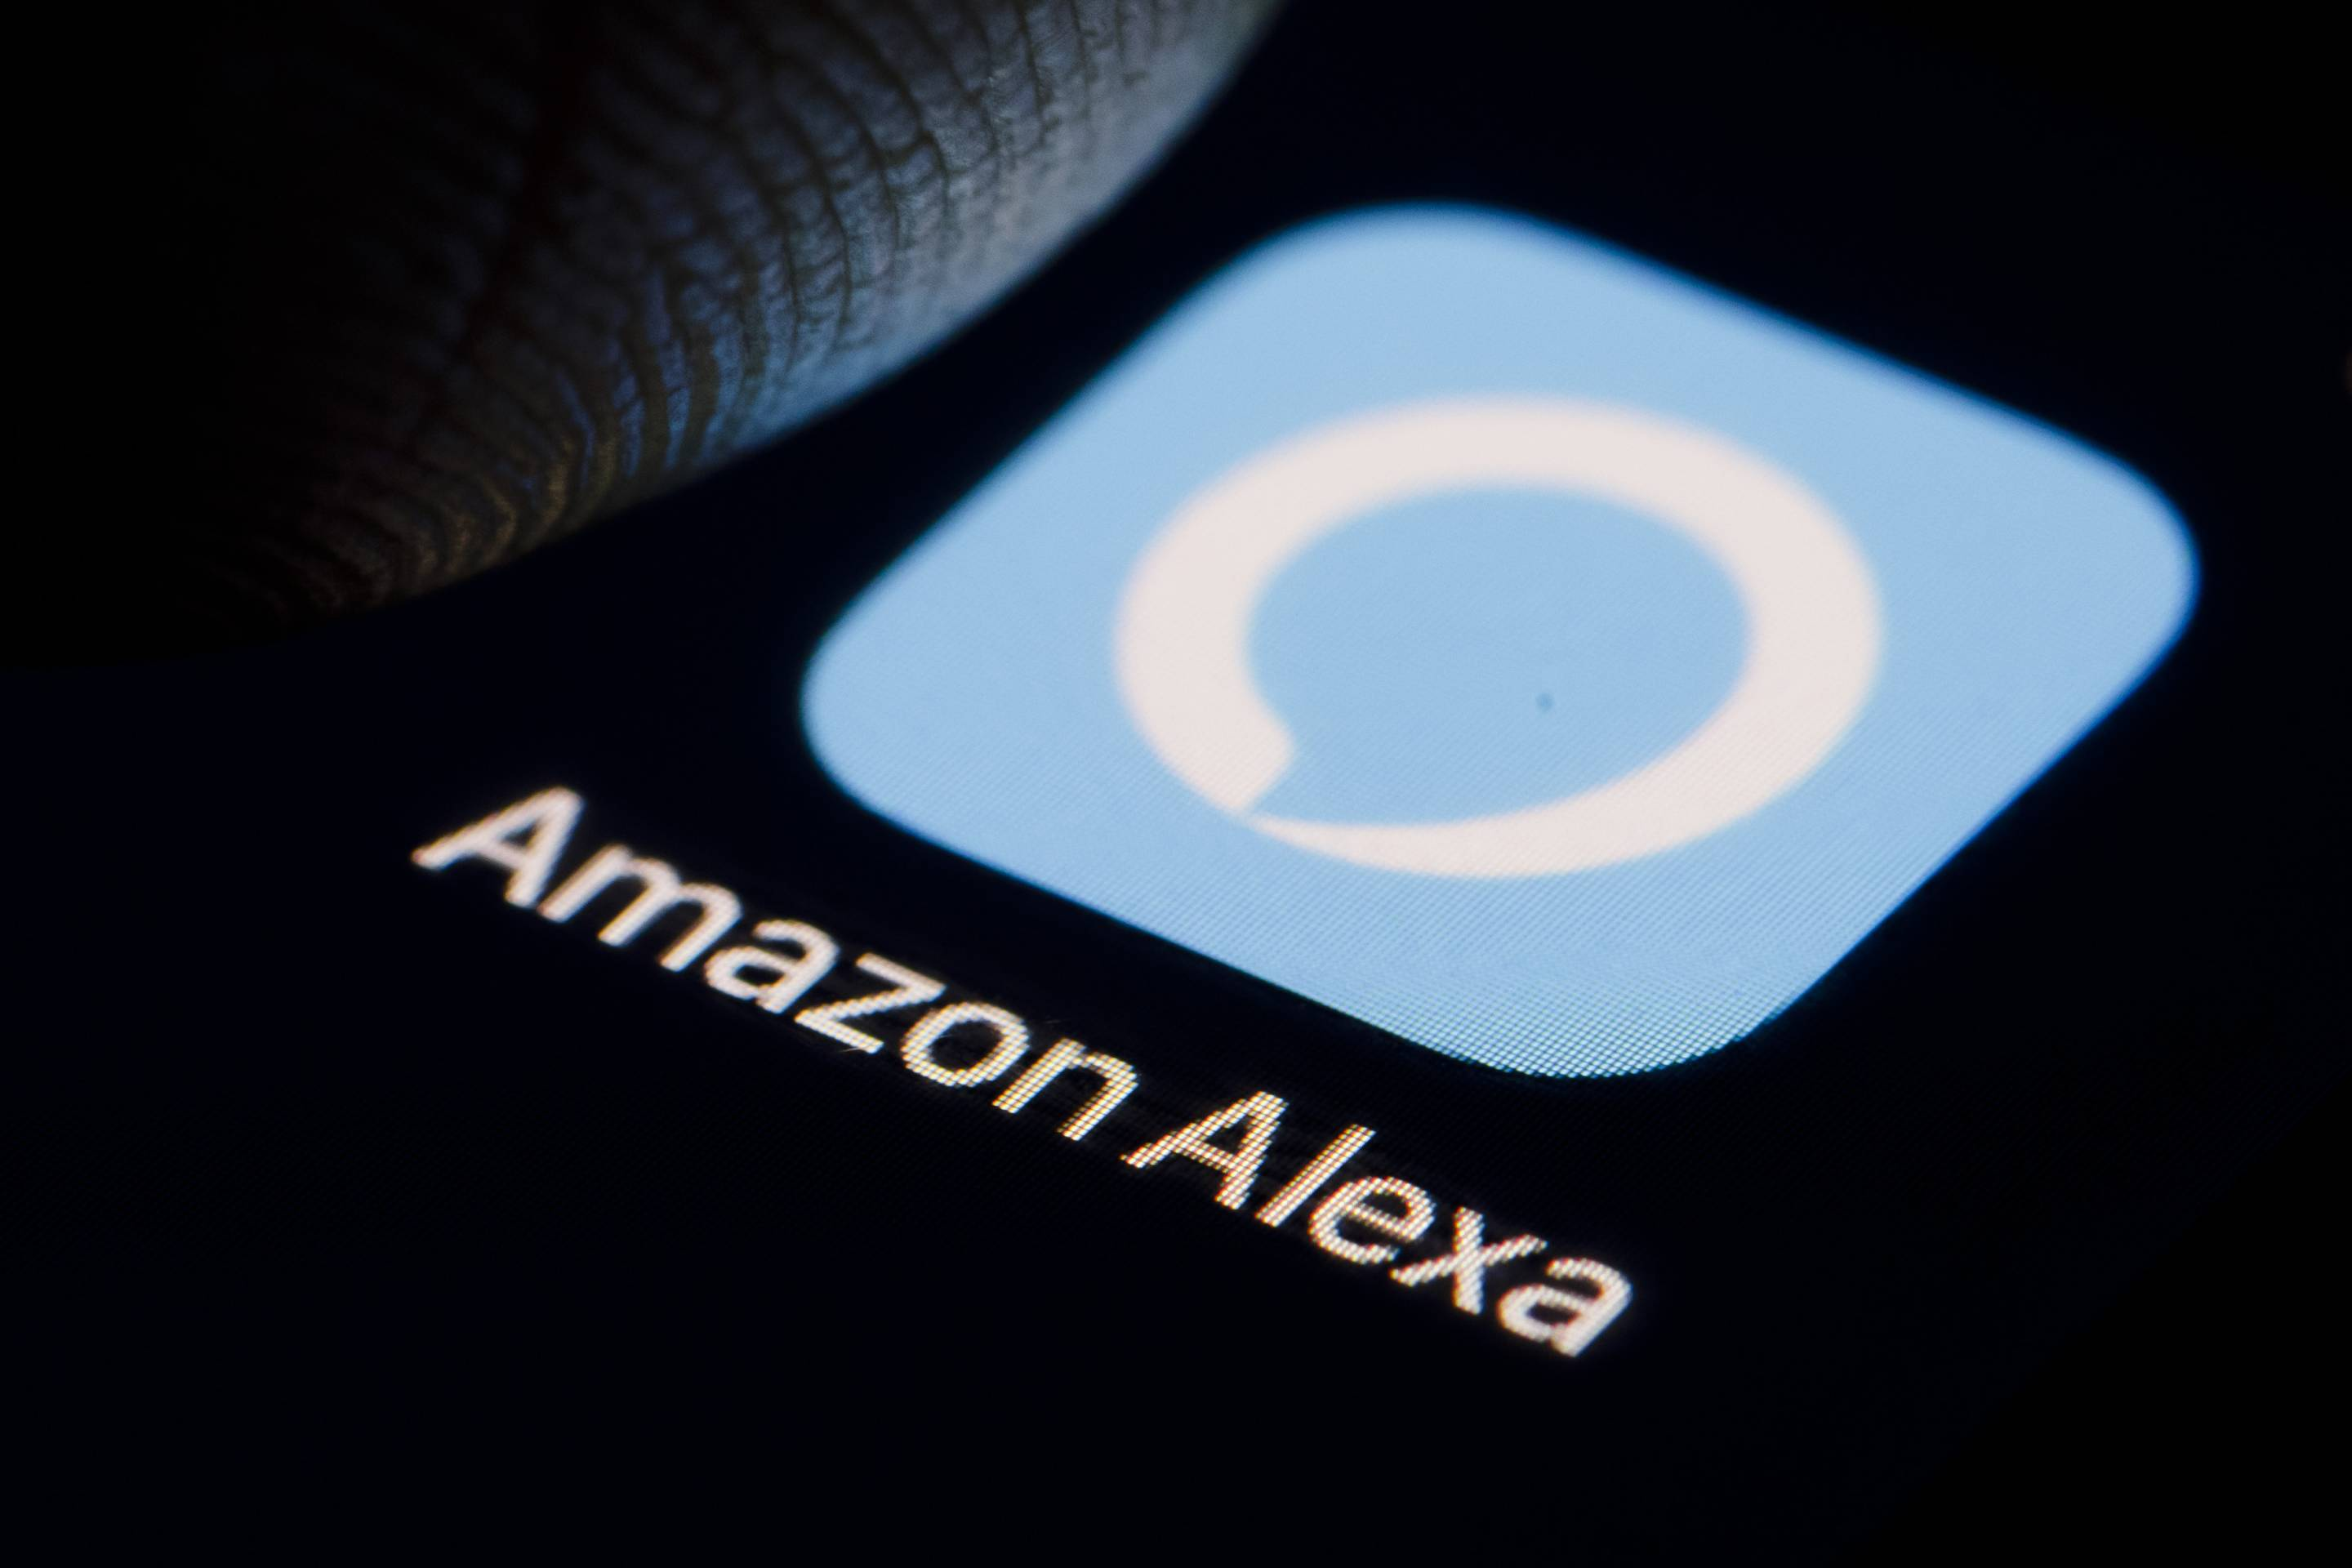 The logo of virtual assistant Amazon Alexa is displayed on a smartphone.